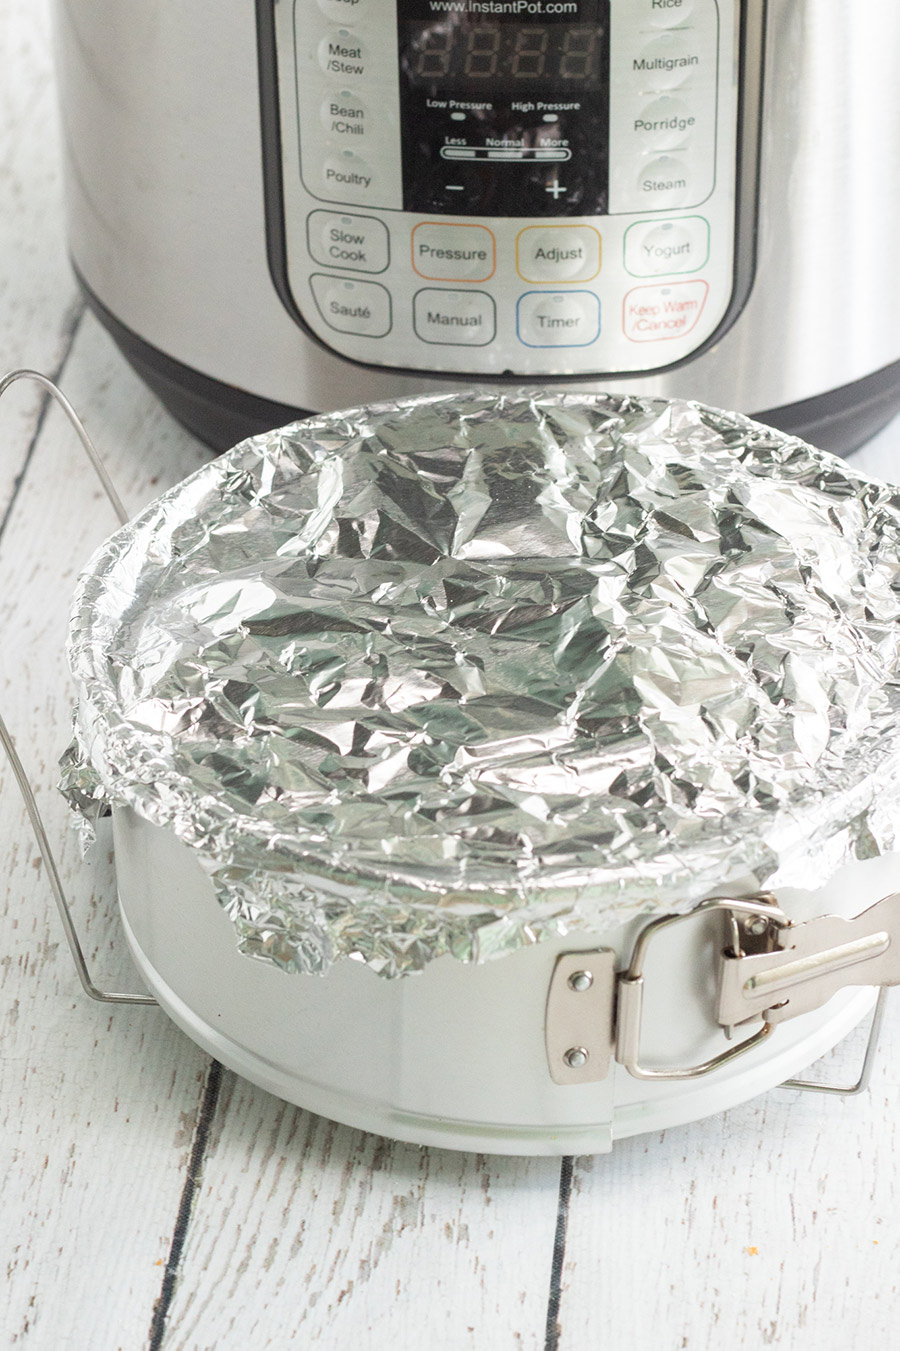 springform pan covered with aluminum foil and an instant pot in the background.